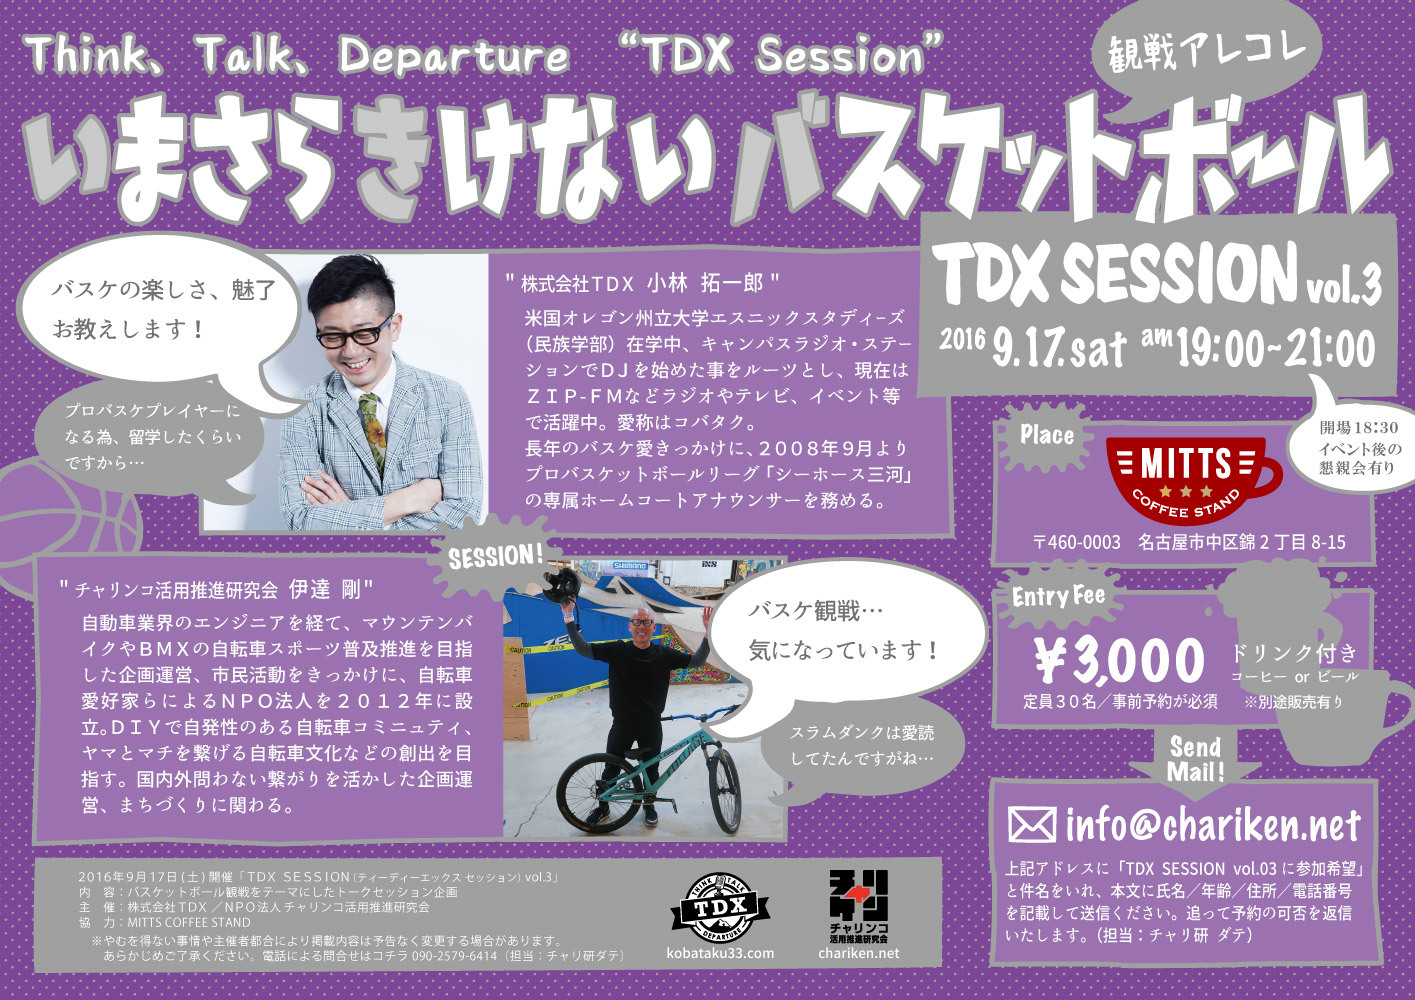 【案内】TDX SESSION vol.3_f0170779_23343688.jpg